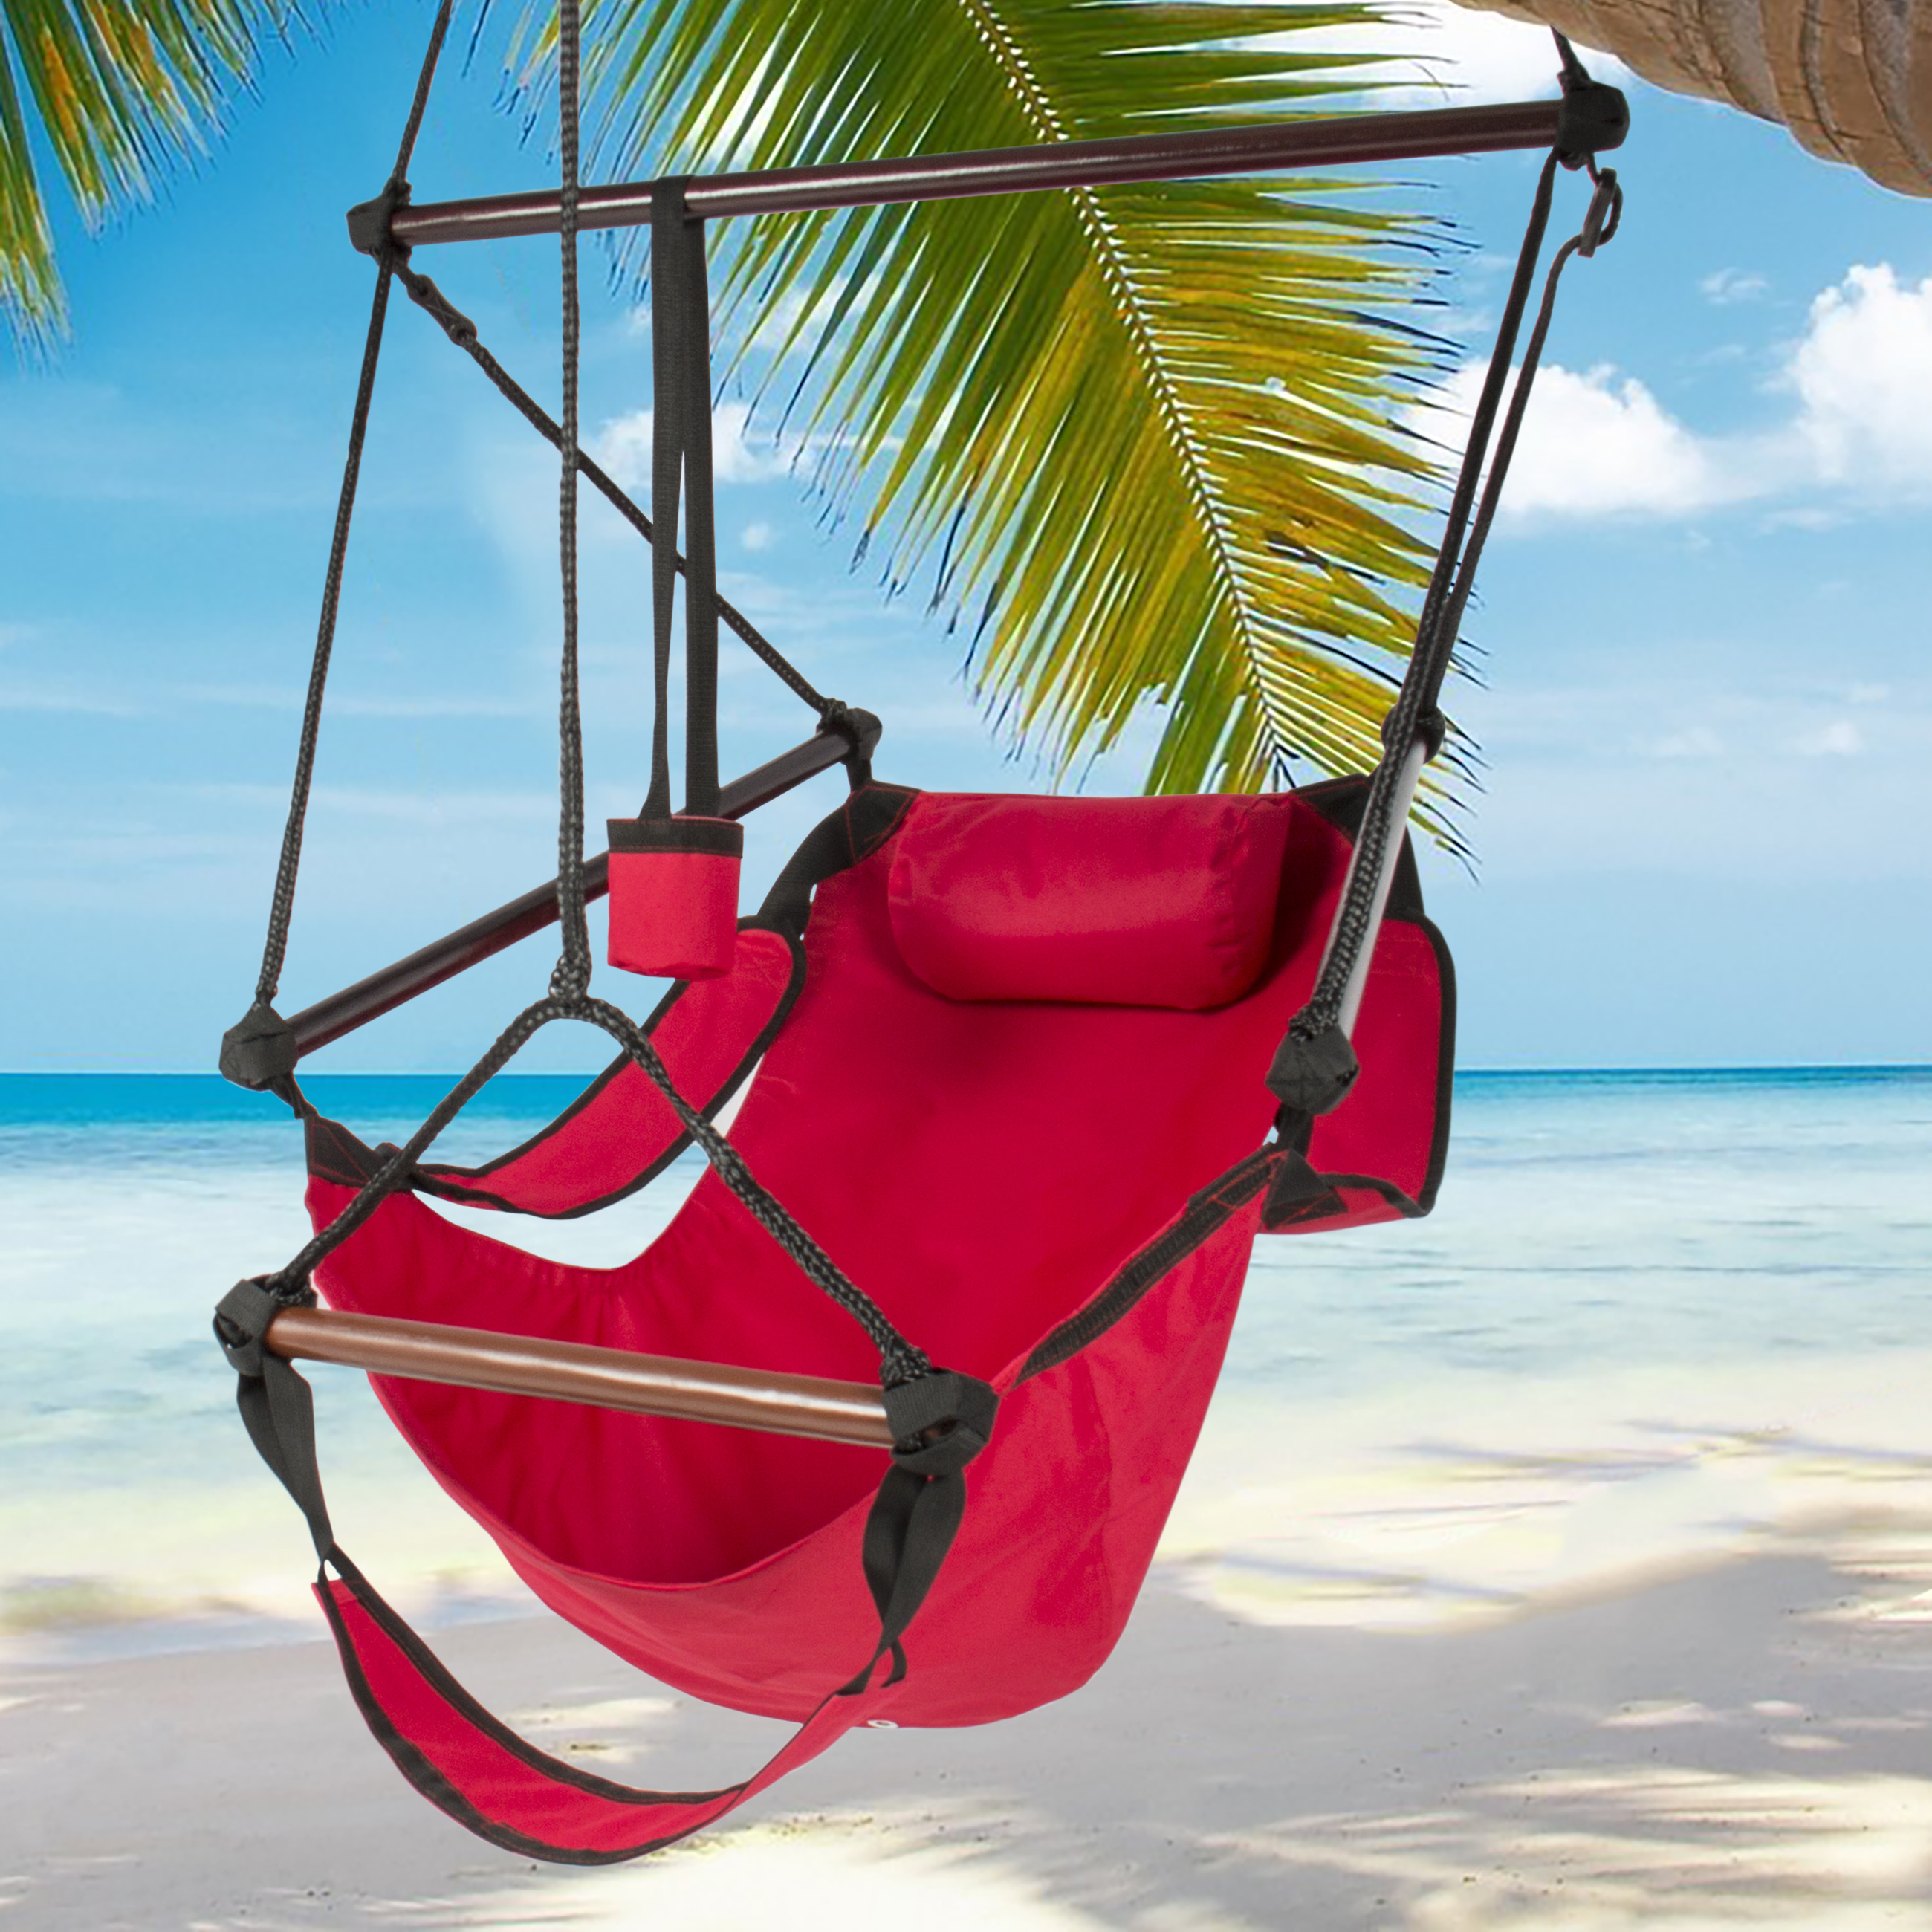 swing and hanging stunning gallery furniture of air outdoor hammock photo chair viewing indoor photos attachment